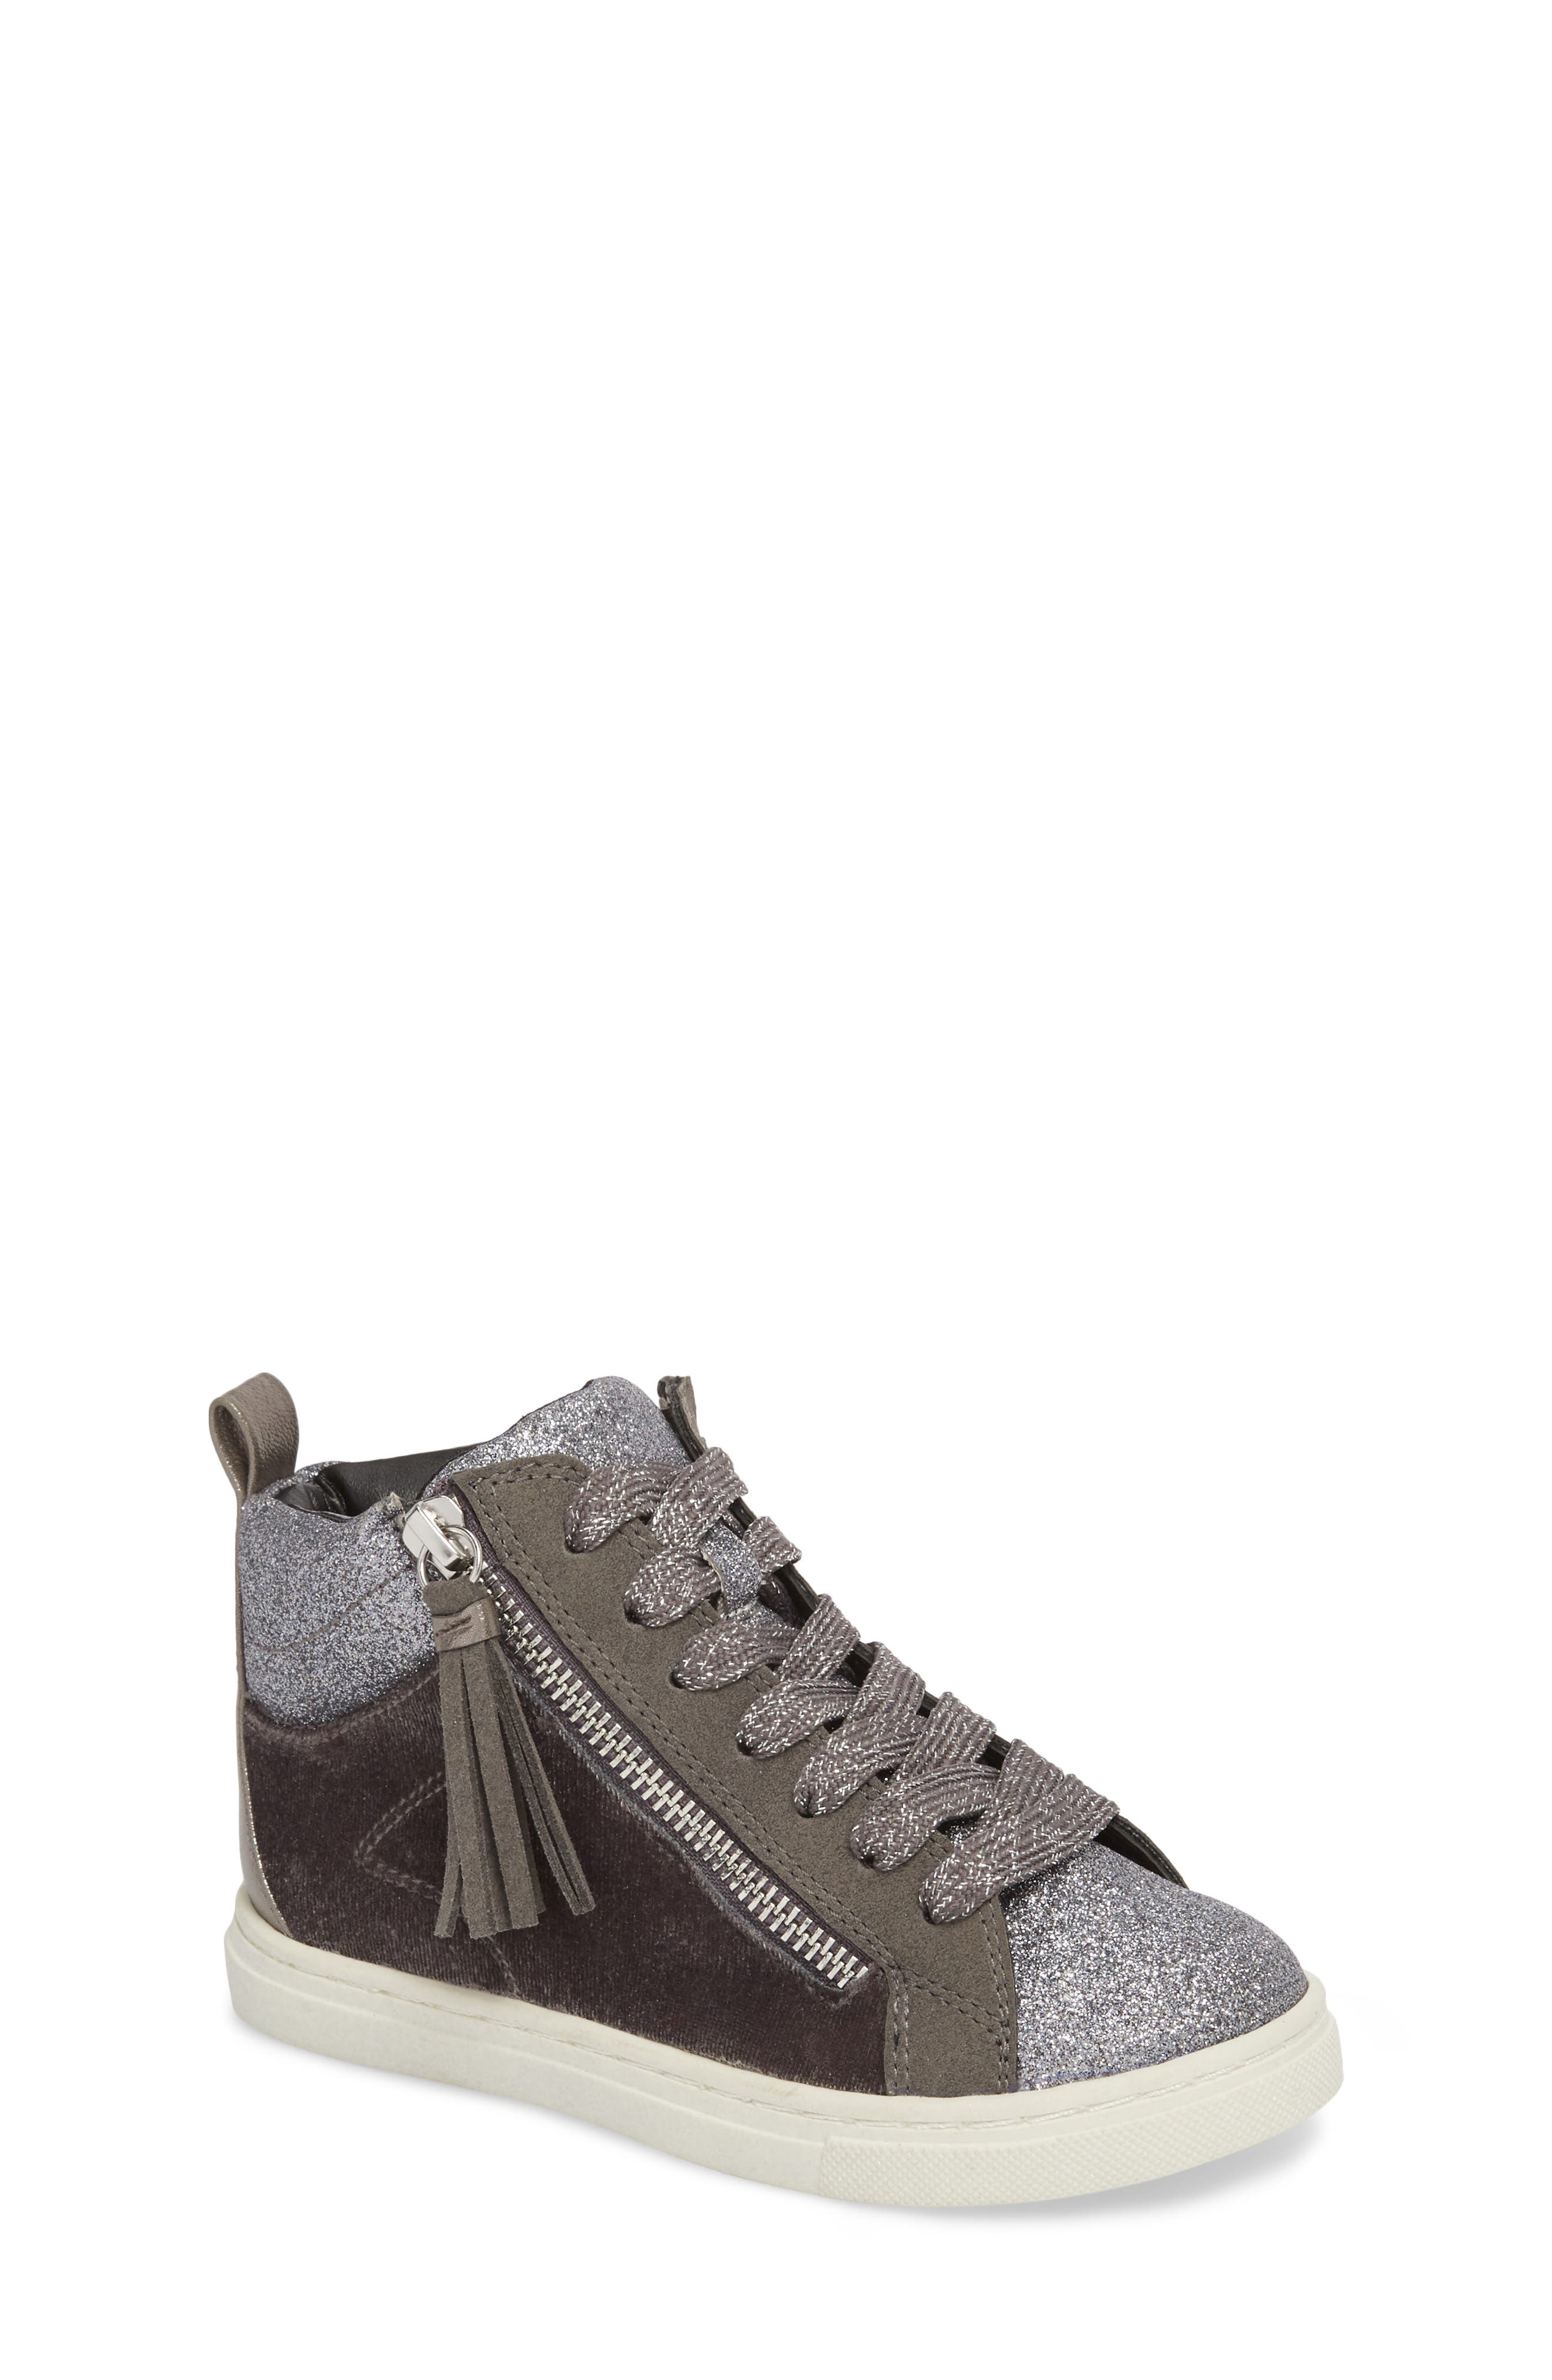 DOLCE VITA,                             Zaila Glitter High Top Sneaker,                             Main thumbnail 1, color,                             034